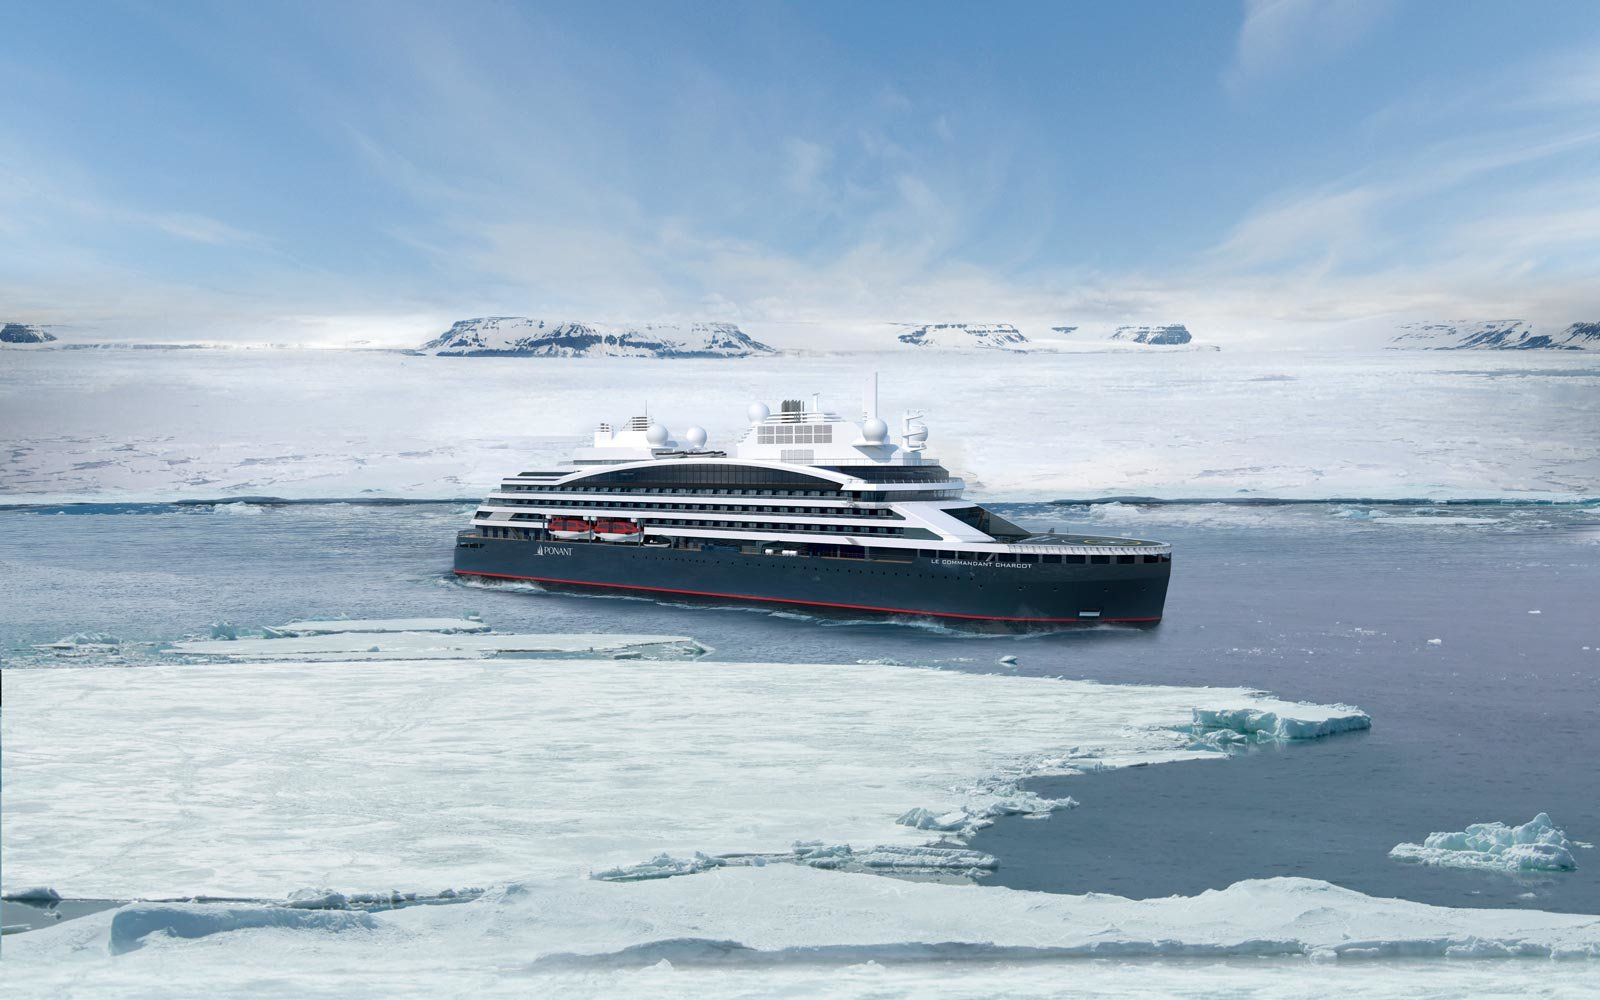 This New Hybrid Ship Is the Most Eco-friendly Way to Visit Antarctica